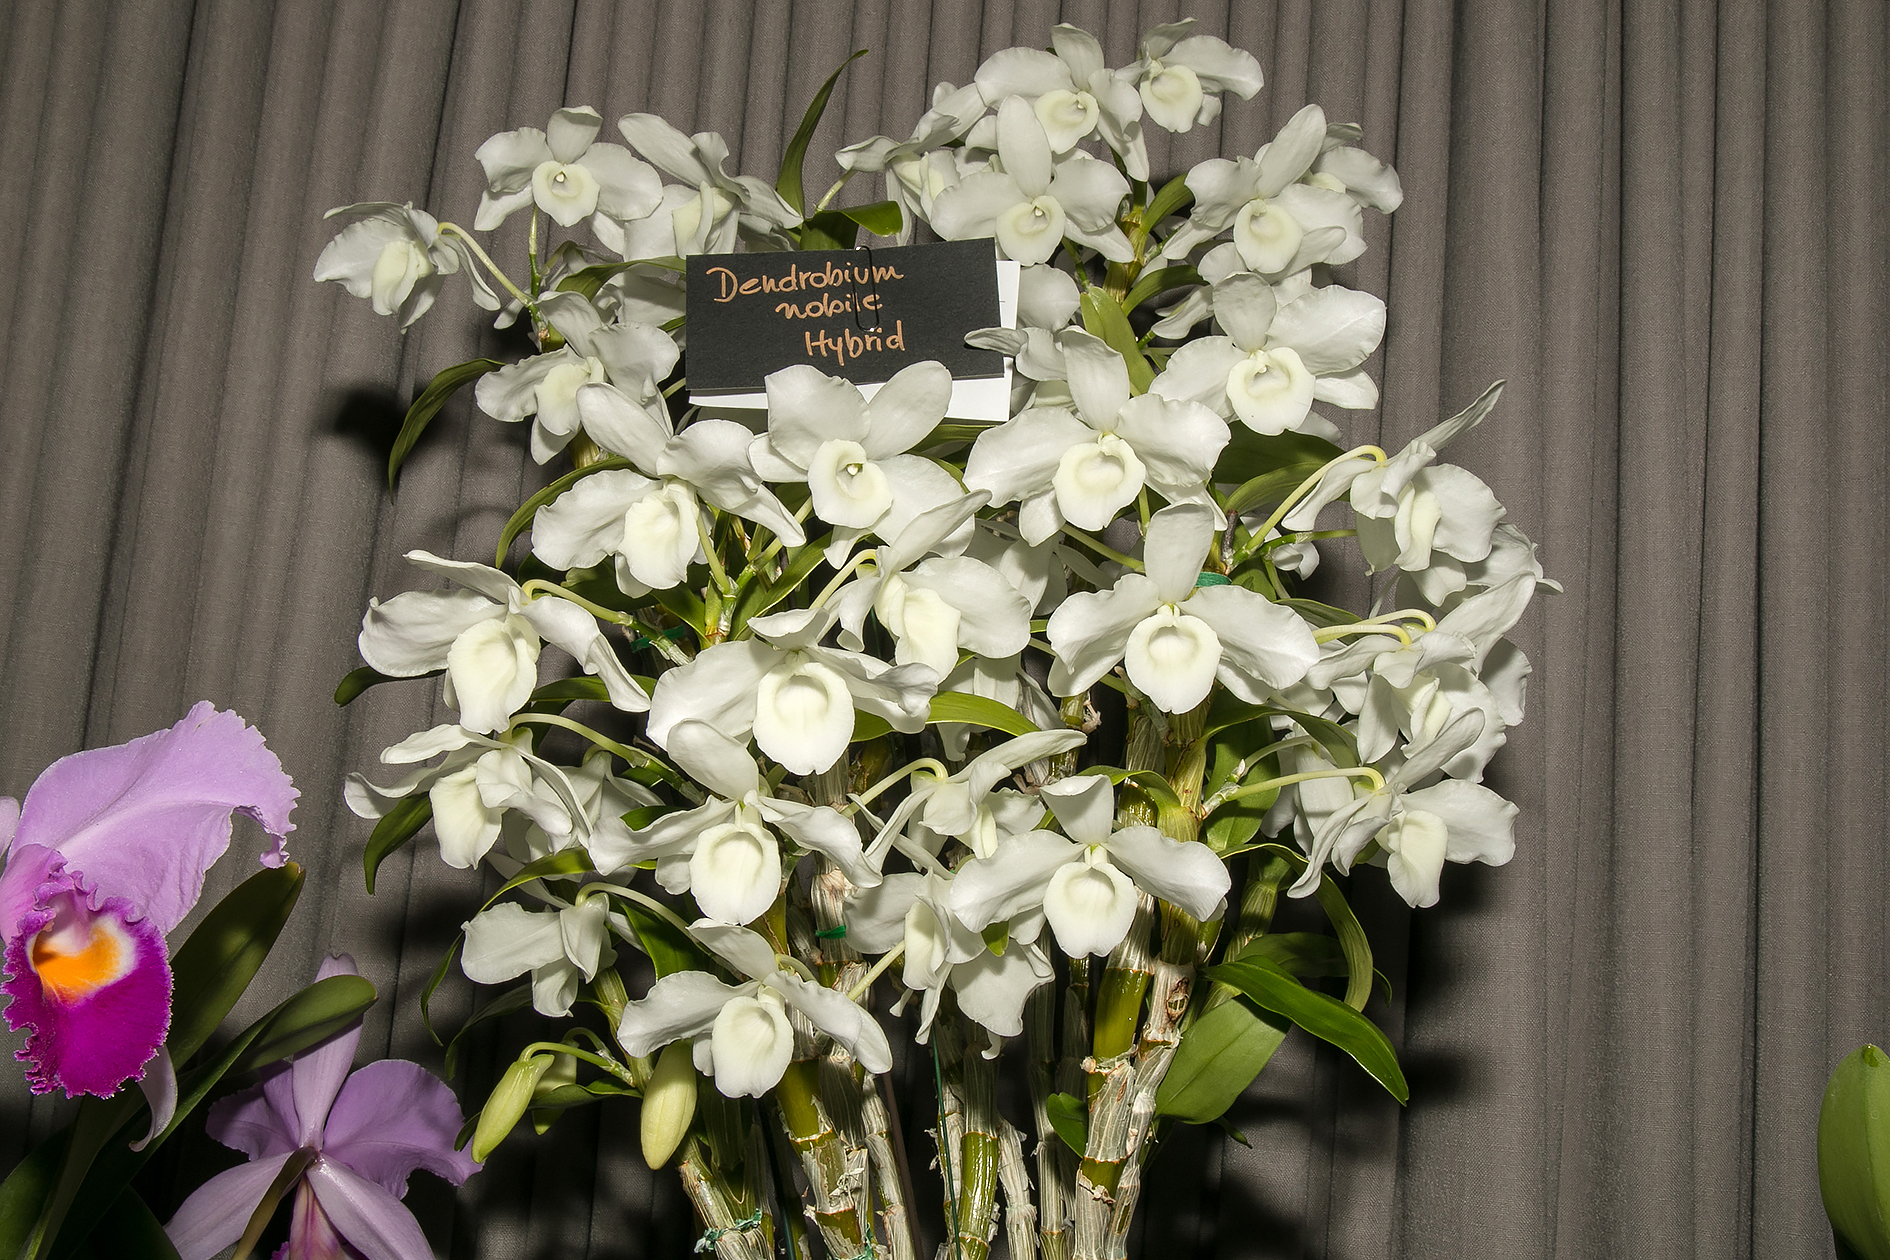 Best in Show - Dendrobium Noble Hybrid